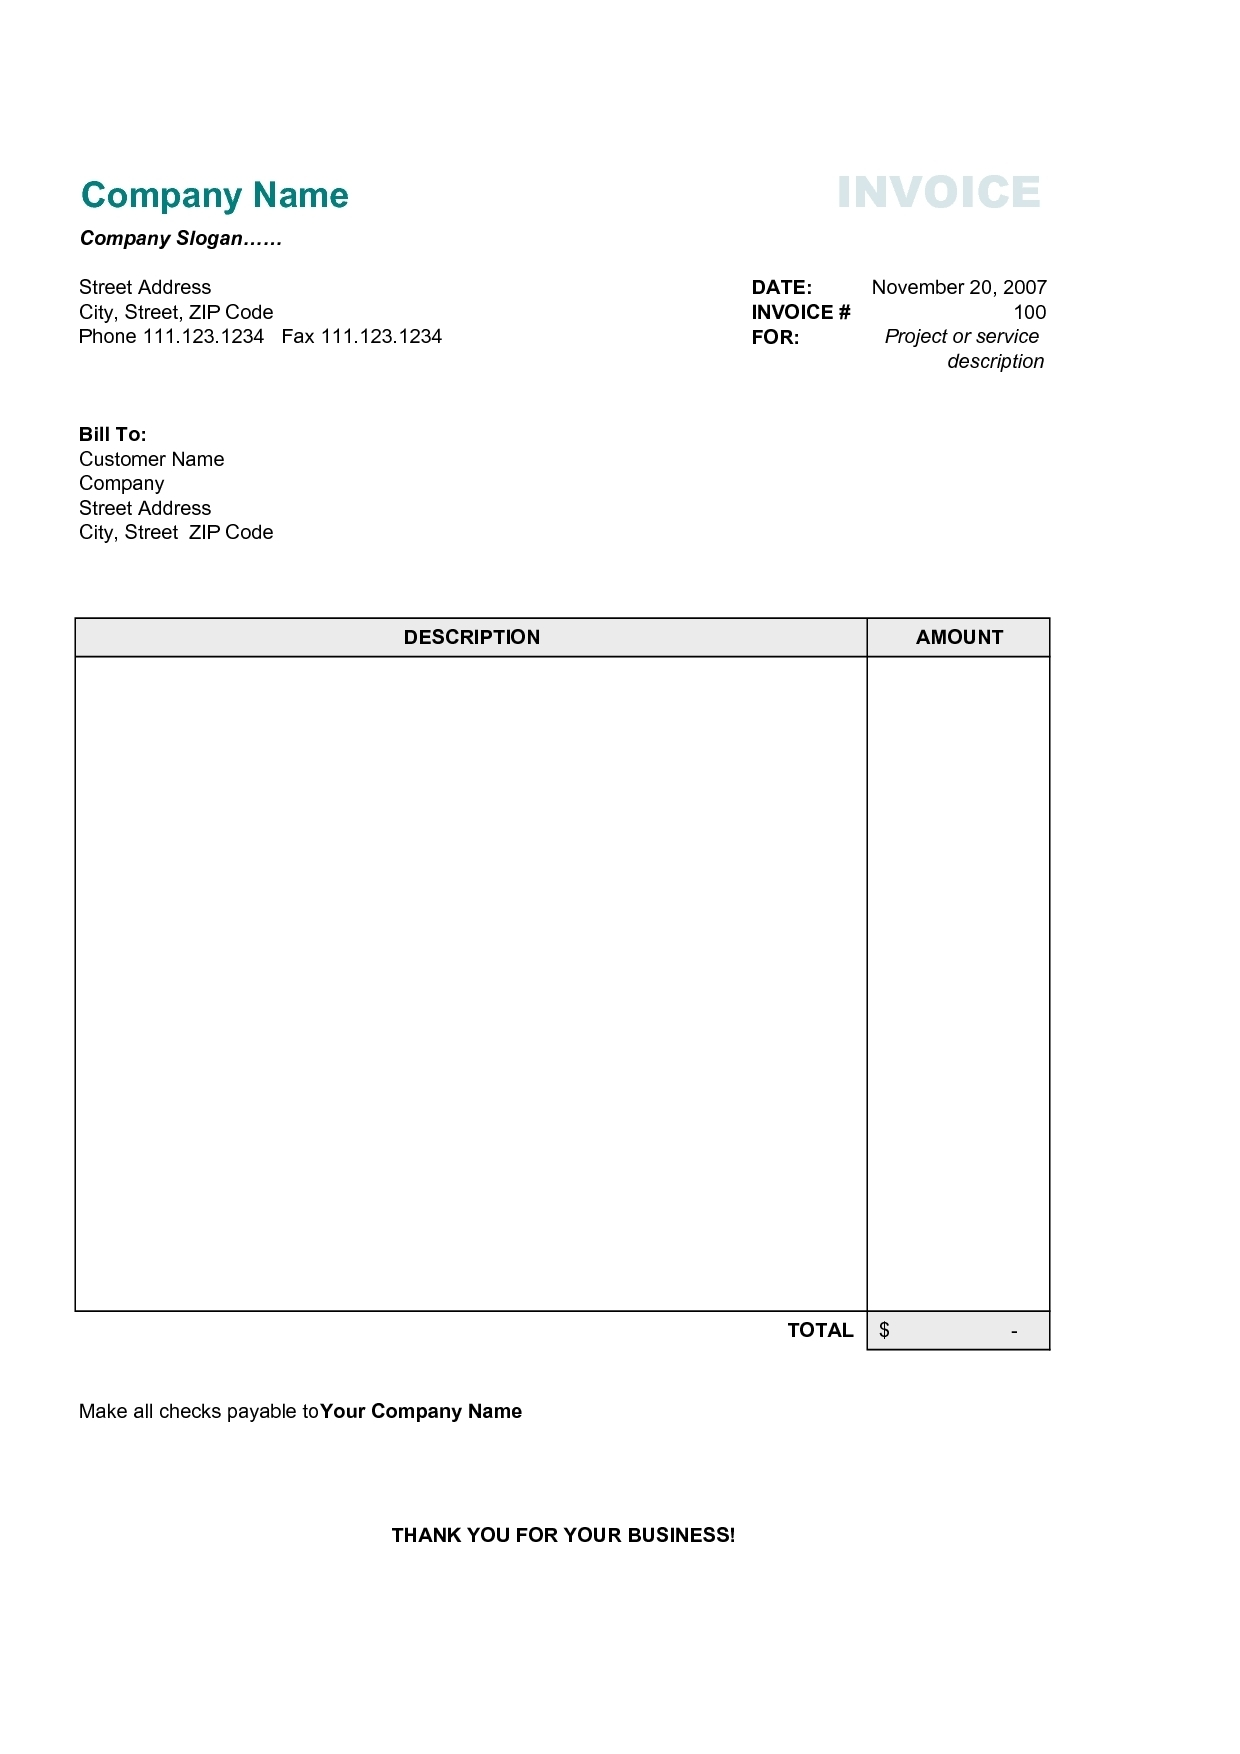 free business invoice templates invoice template ideas free business invoice forms